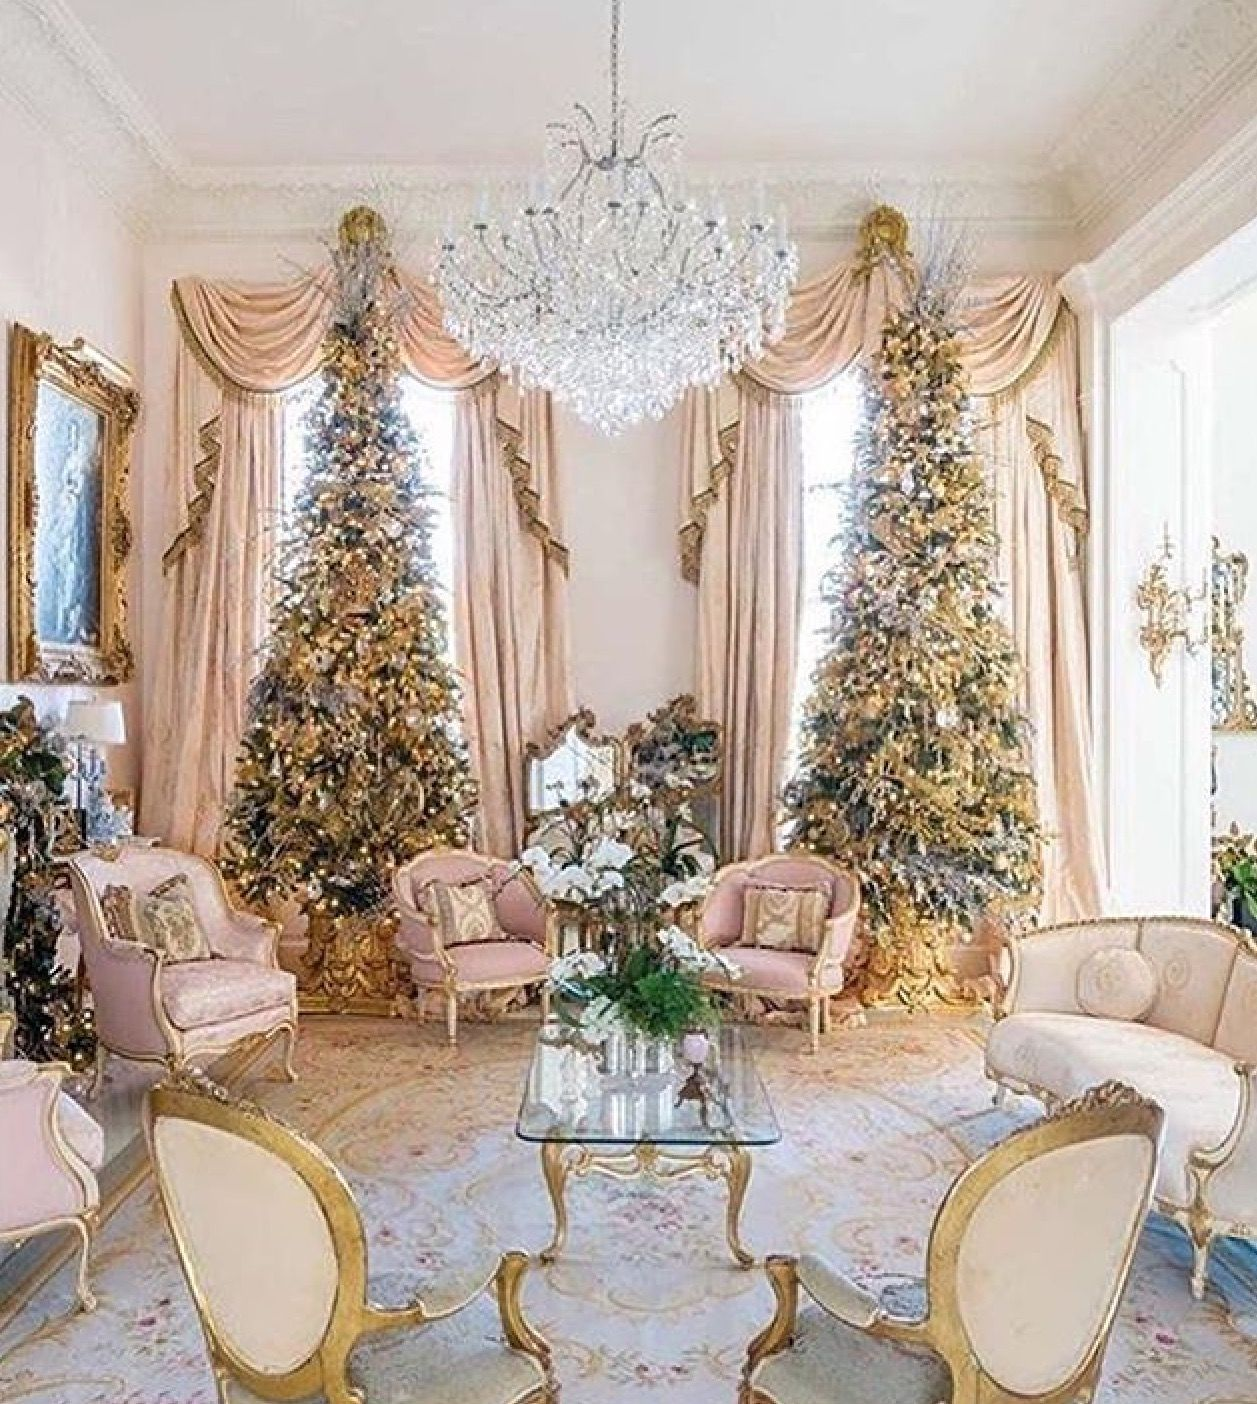 Elegant Southern Christmas: Pin By Carla Steele On CHRISTMAS AT MISS MILLIONAIRESS'S